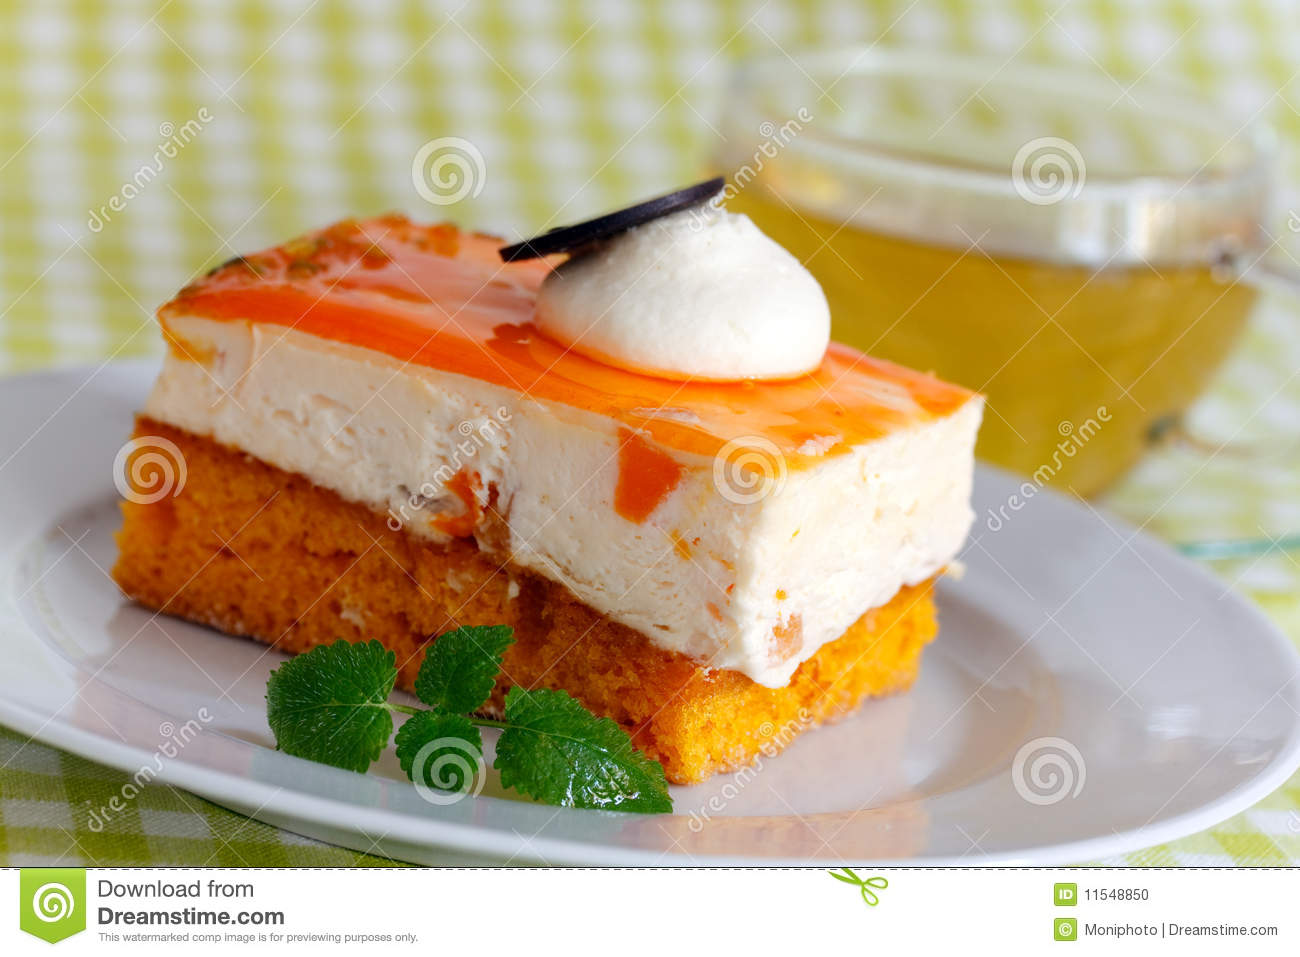 Orange Cream Cake With Cream Stock Photo - Image: 11548850